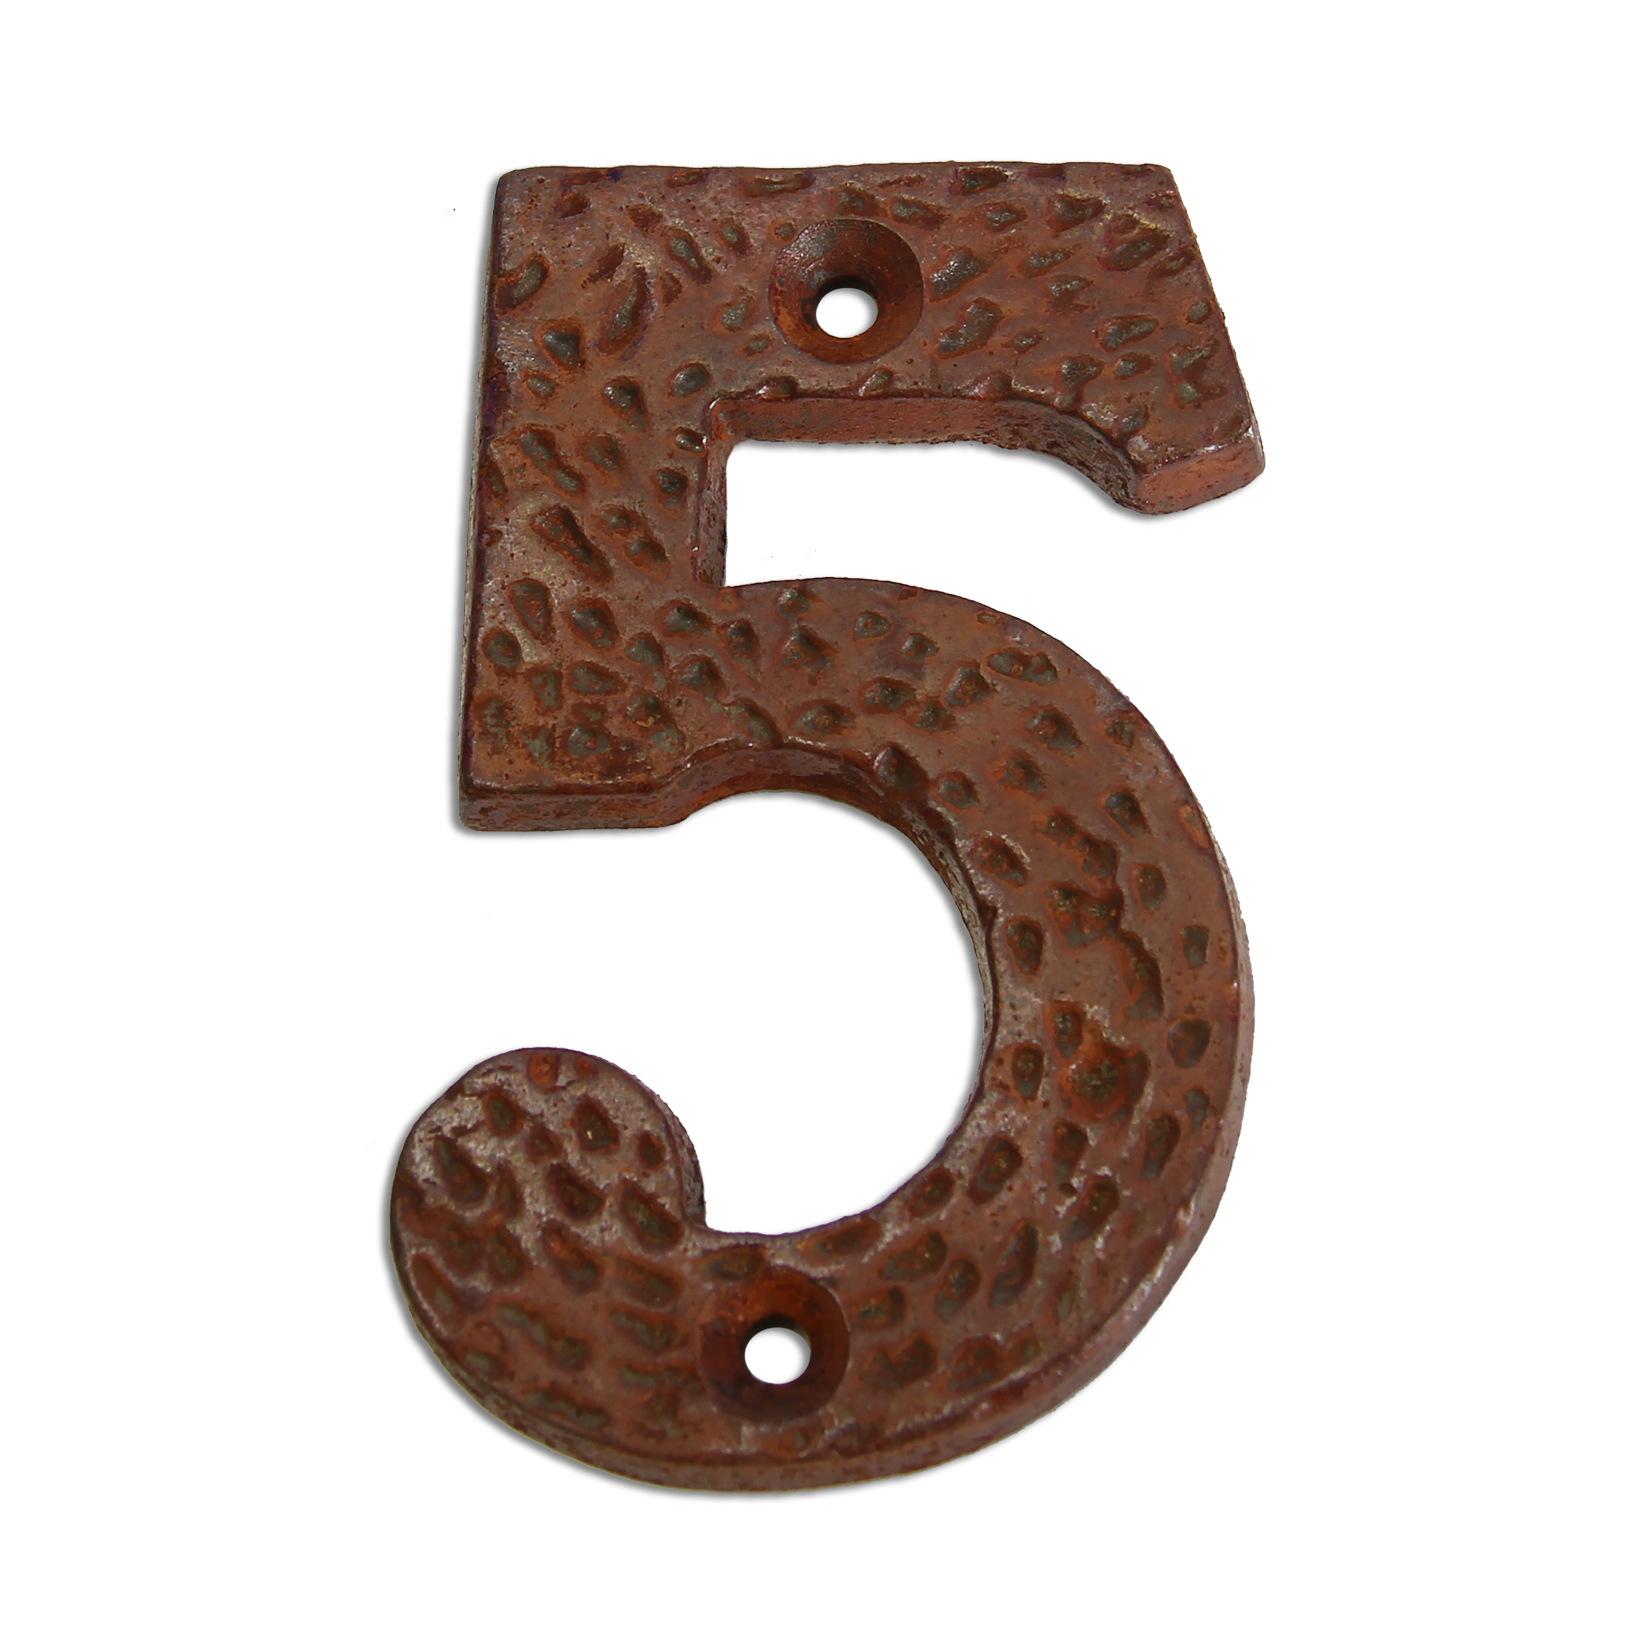 3-inch iron metal house number in rustic country finish - metal number 5